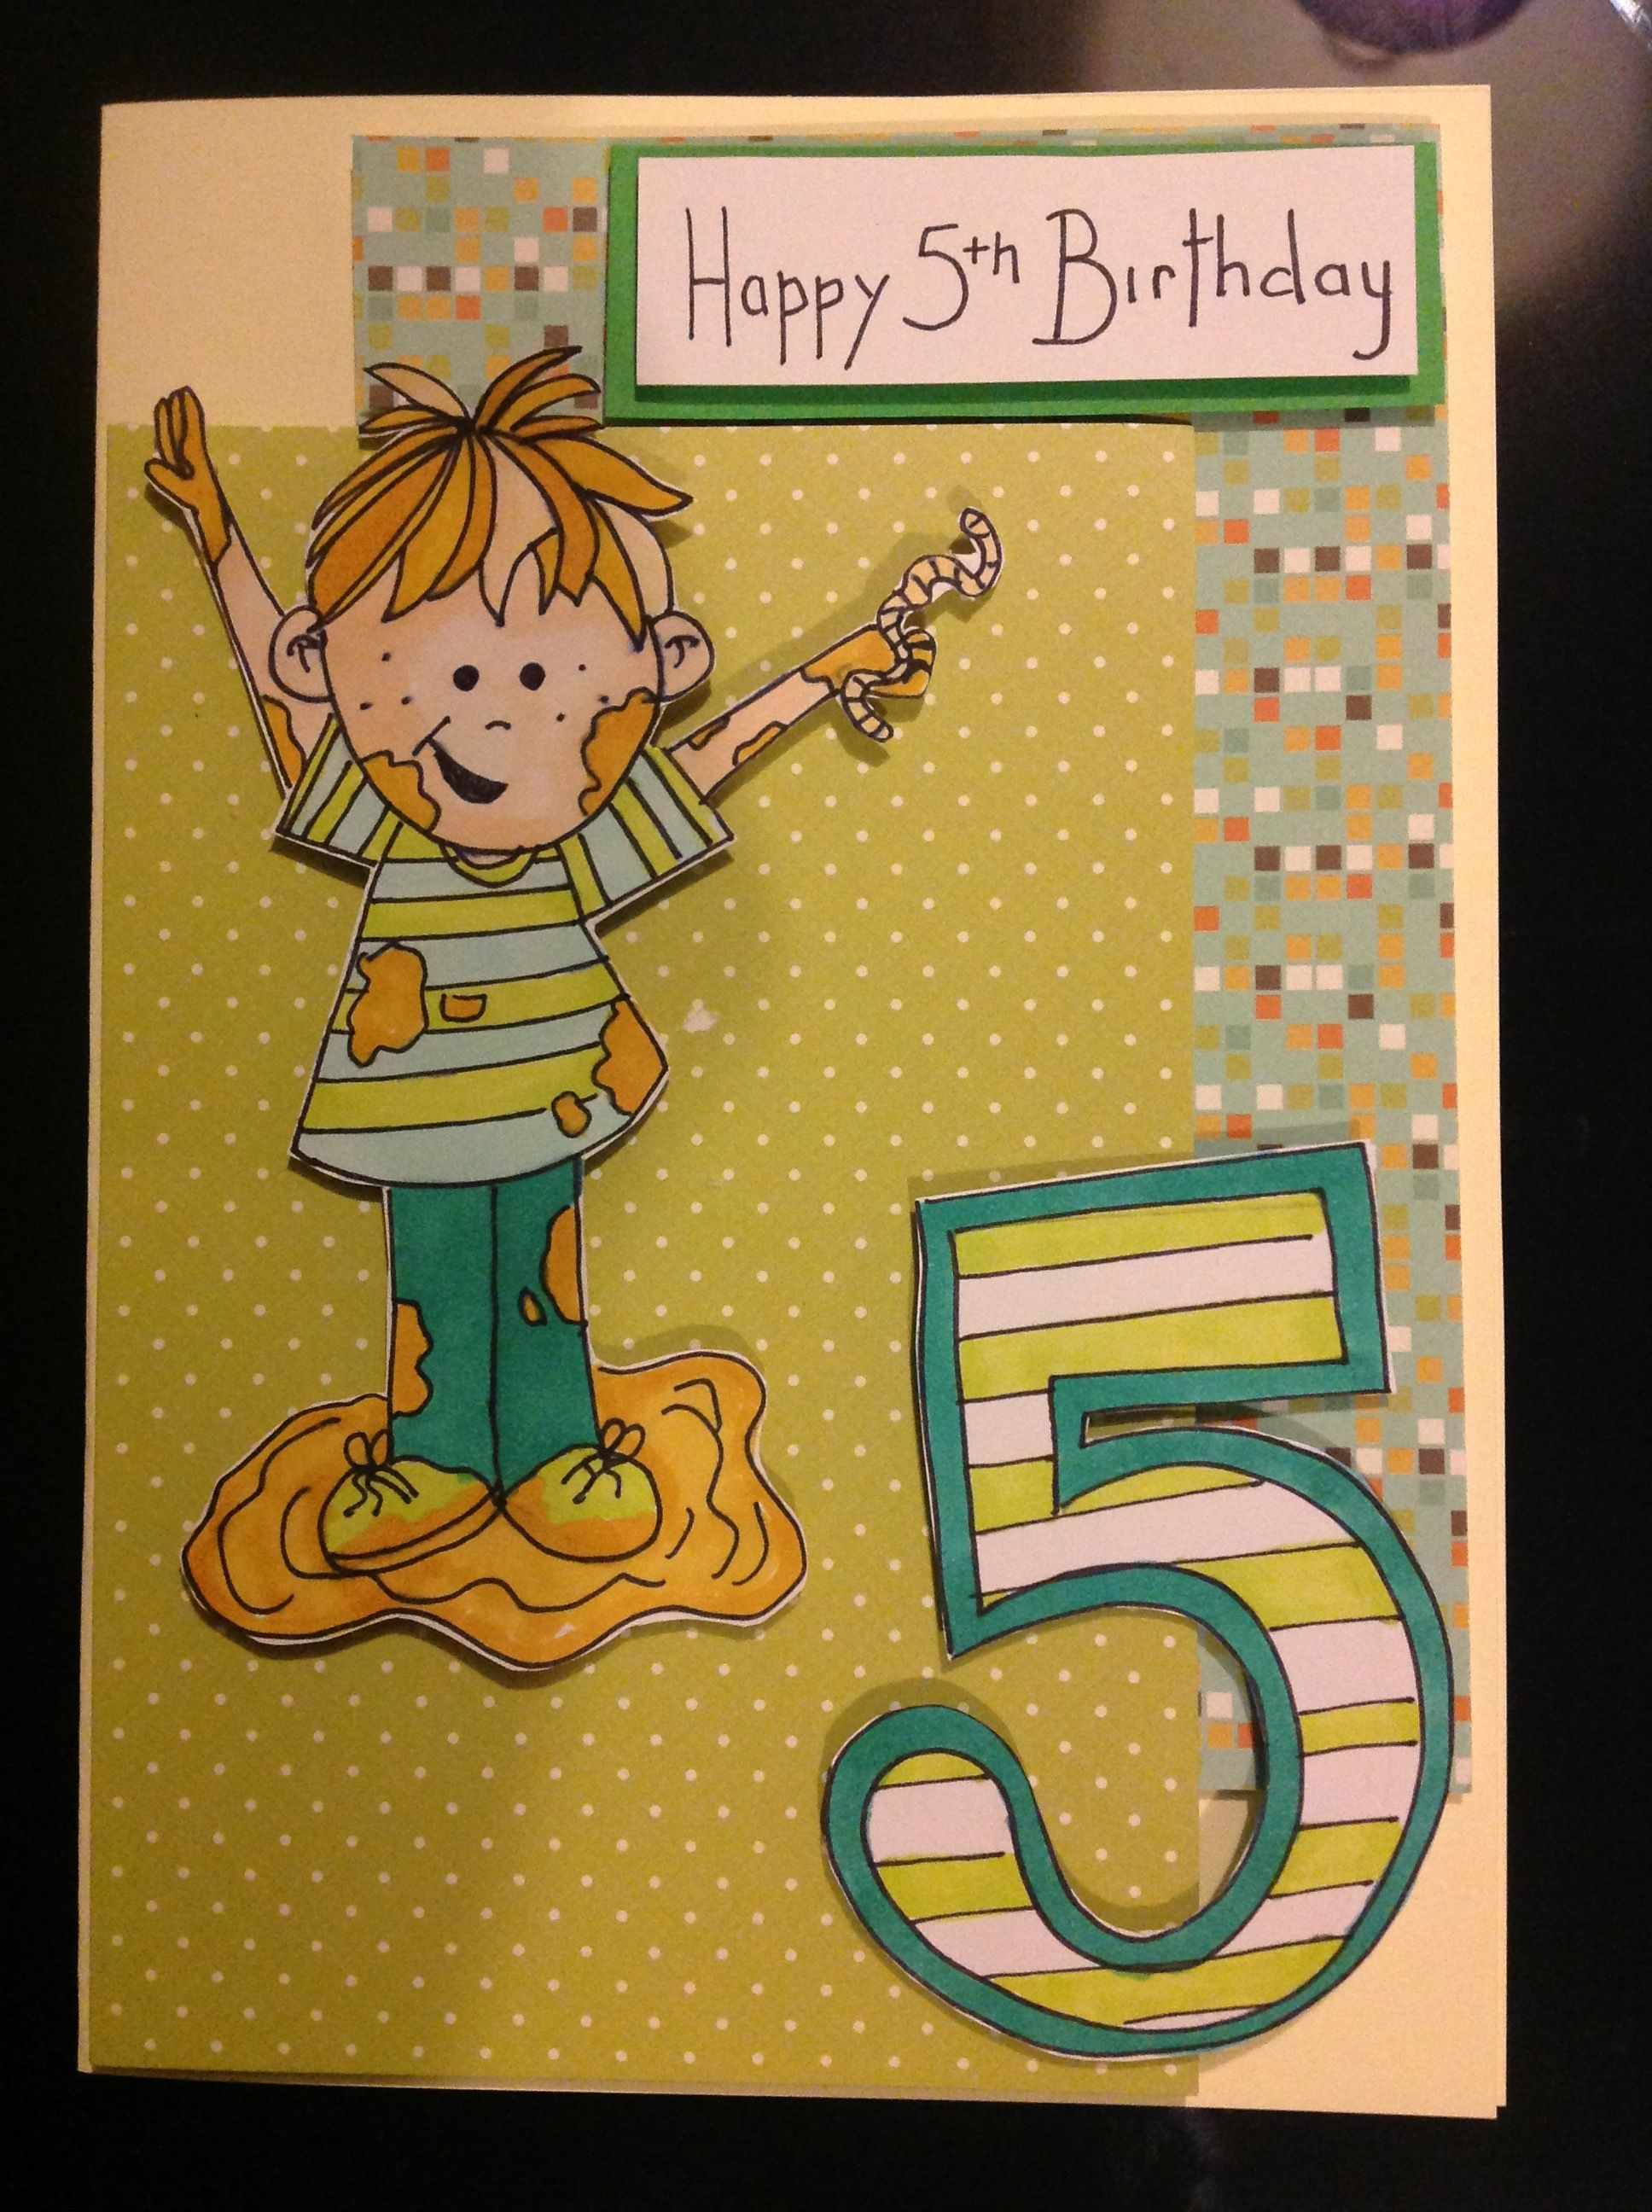 Home Made Hand Drawn Typical 5 Year Old Boy Birthday Card